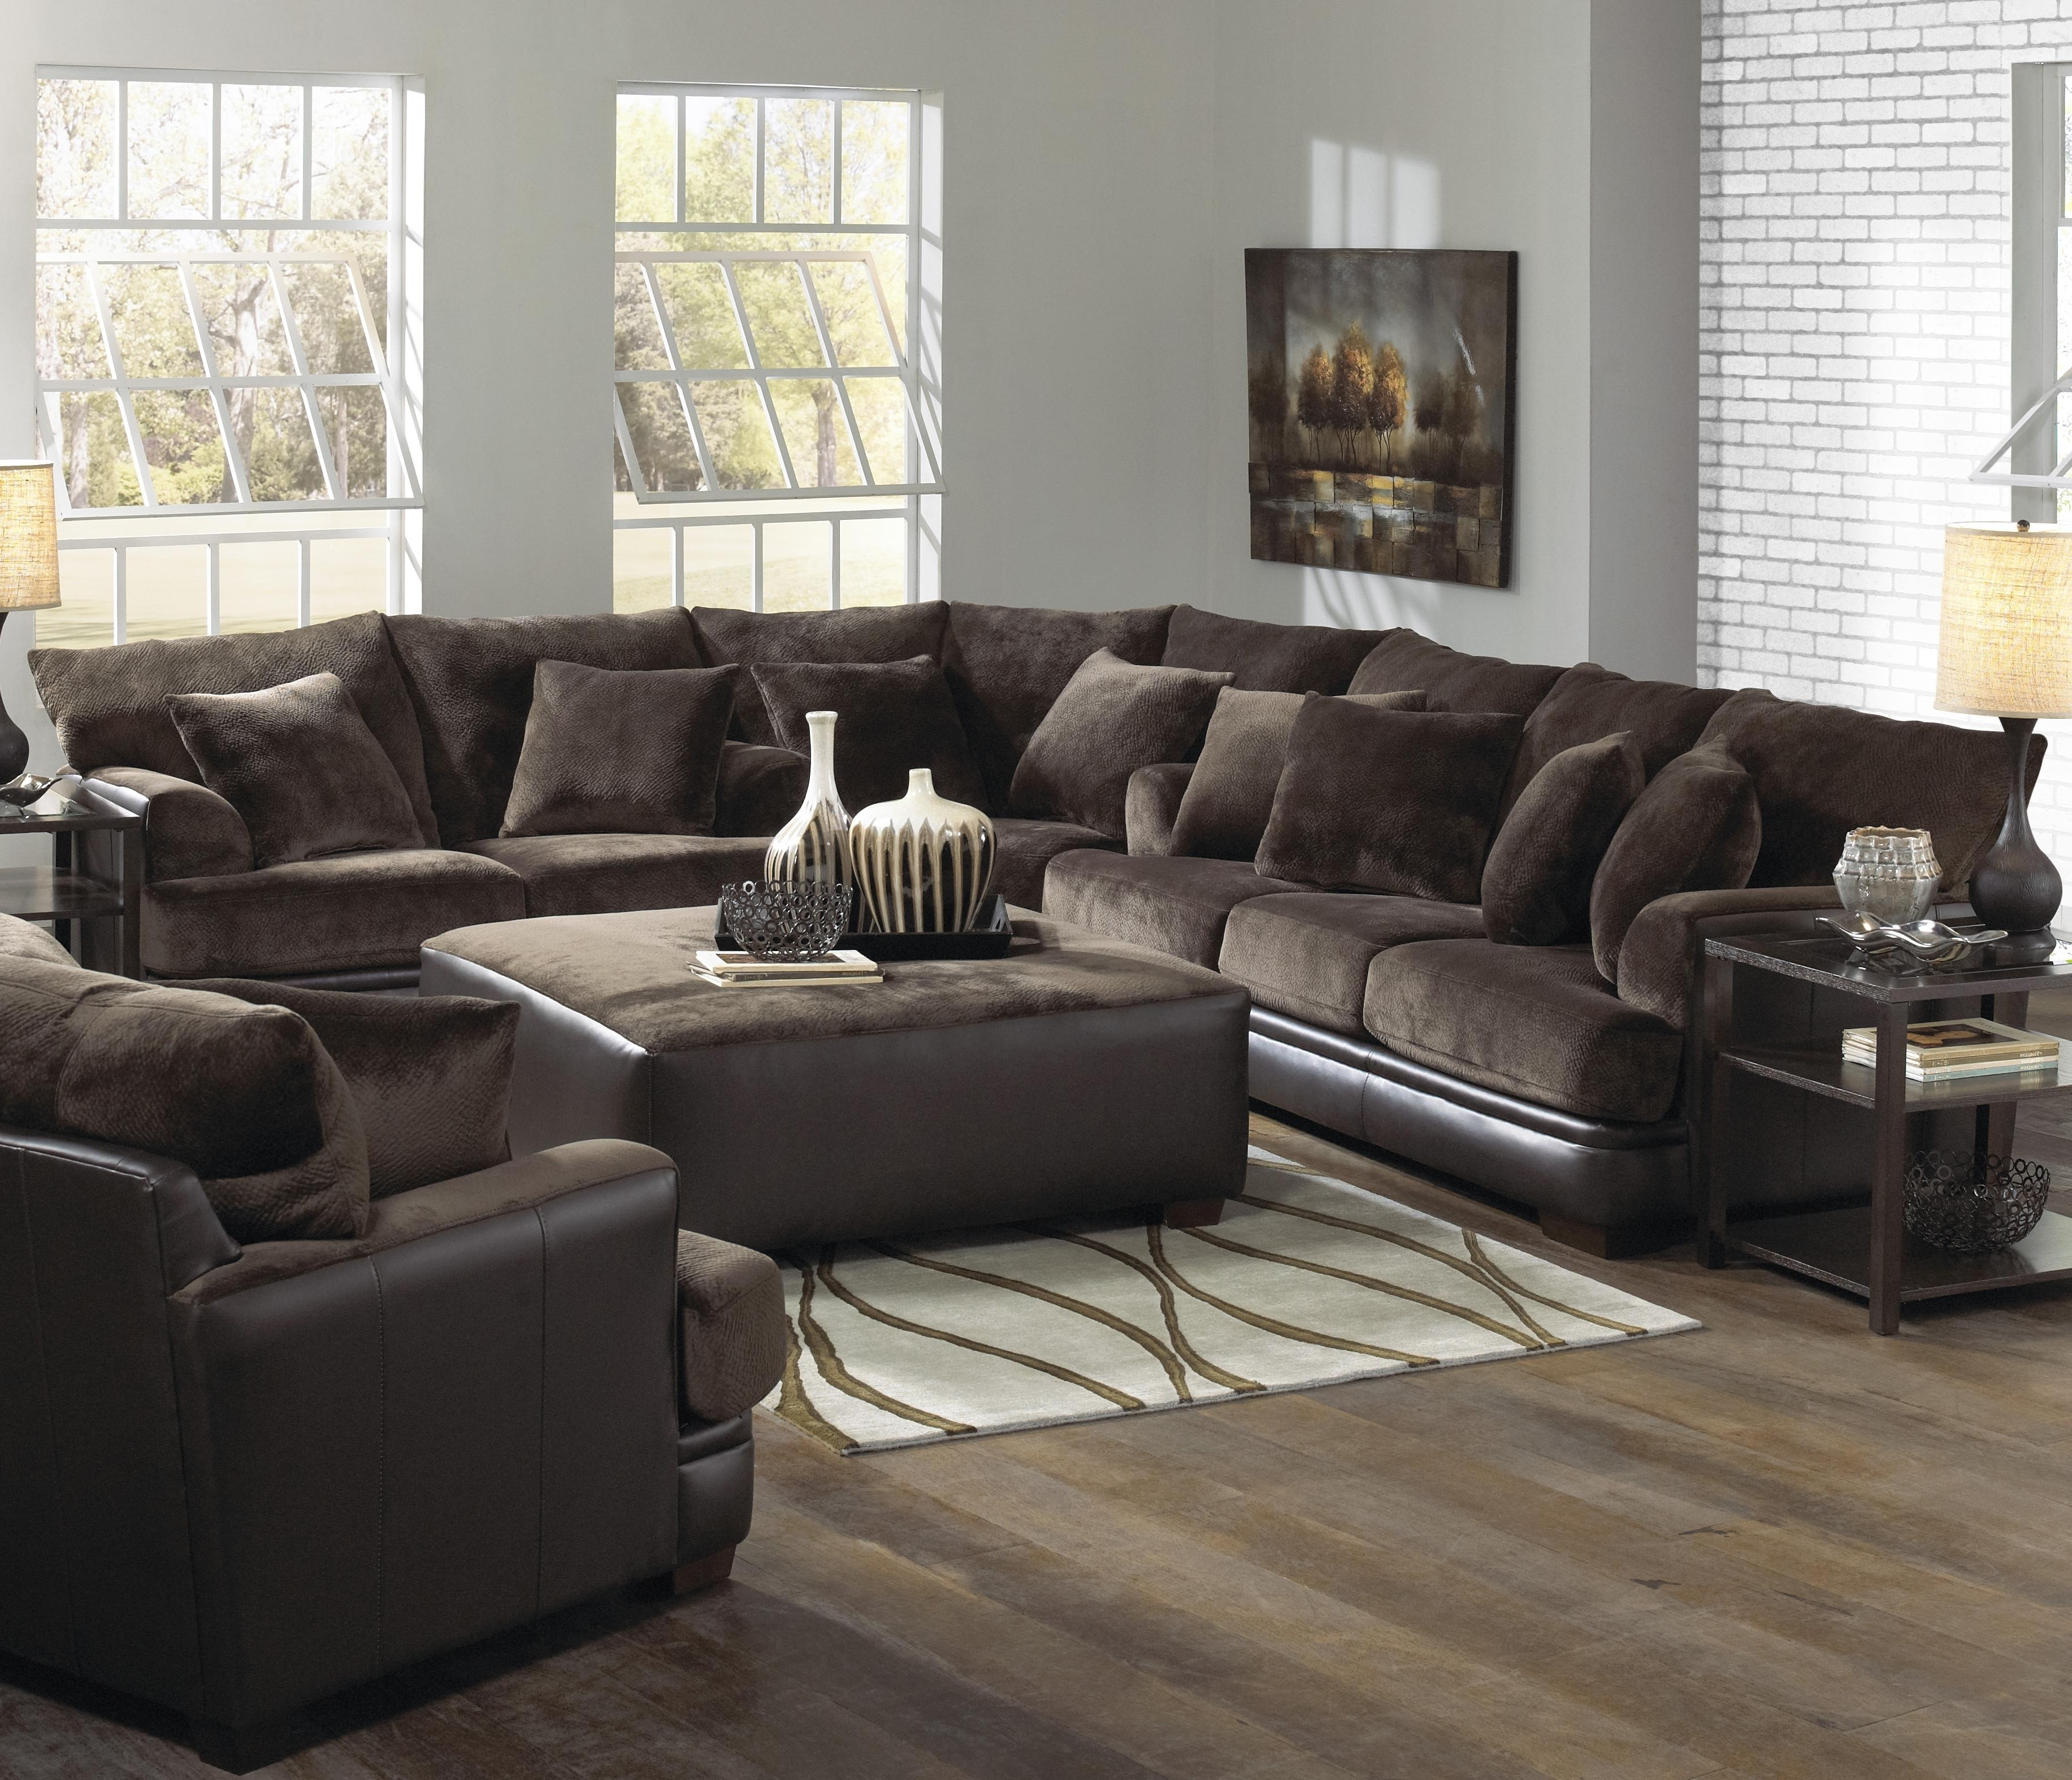 Widely Used Extra Large Sectional Leather Couches • Leather Sofa Pertaining To Extra Large Sectional Sofas (View 20 of 20)